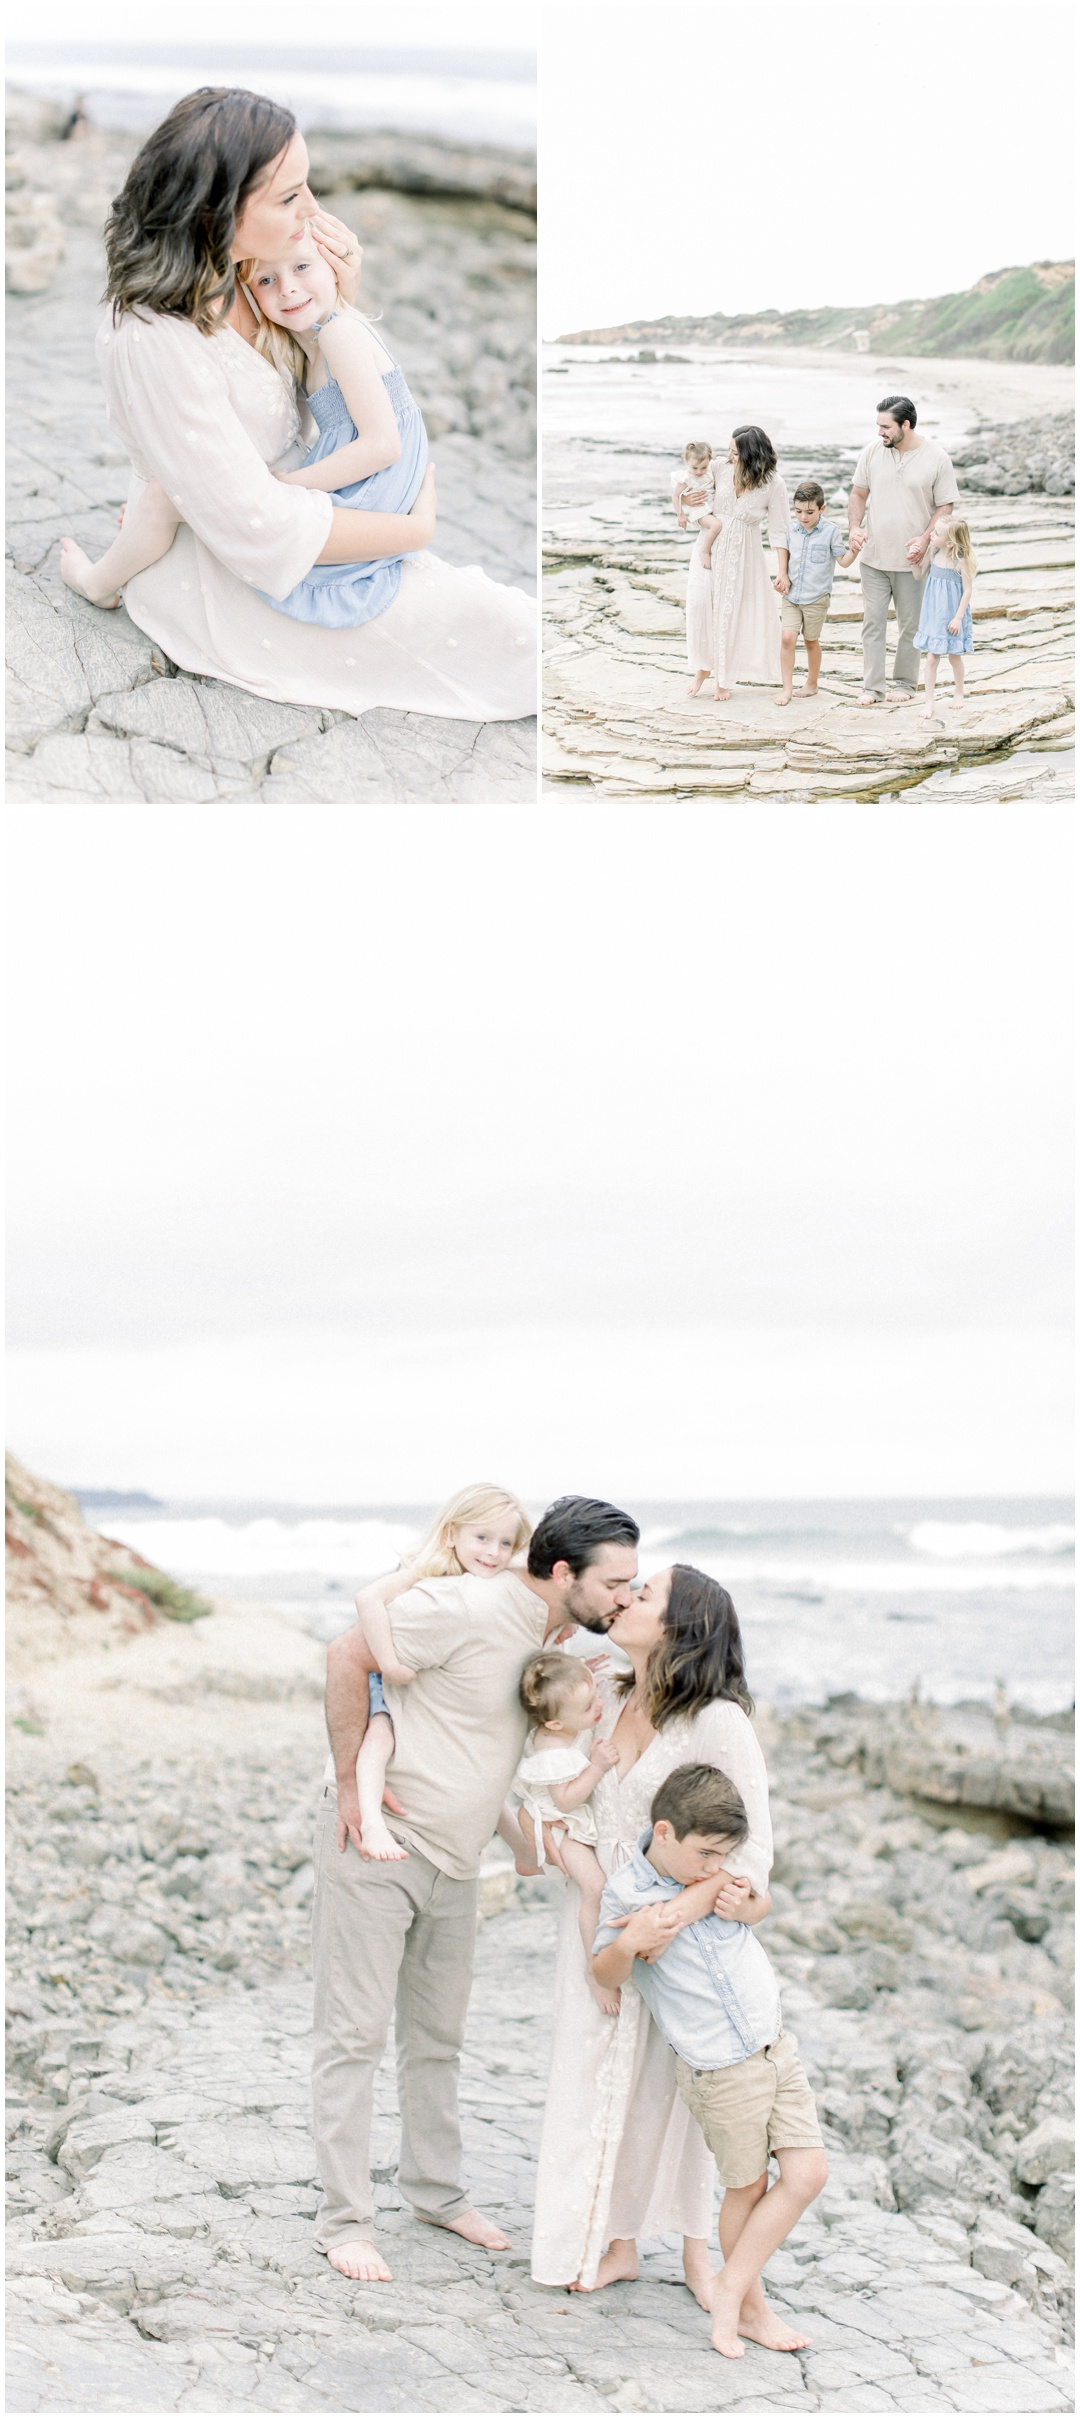 Newport_Beach_Newborn_Light_Airy_Natural_Photographer_Newport_Beach_Photographer_Orange_County_Family_Photographer_Cori_Kleckner_Photography_Newport_Beach_Photographer_Alexis_McElwee__4030.jpg